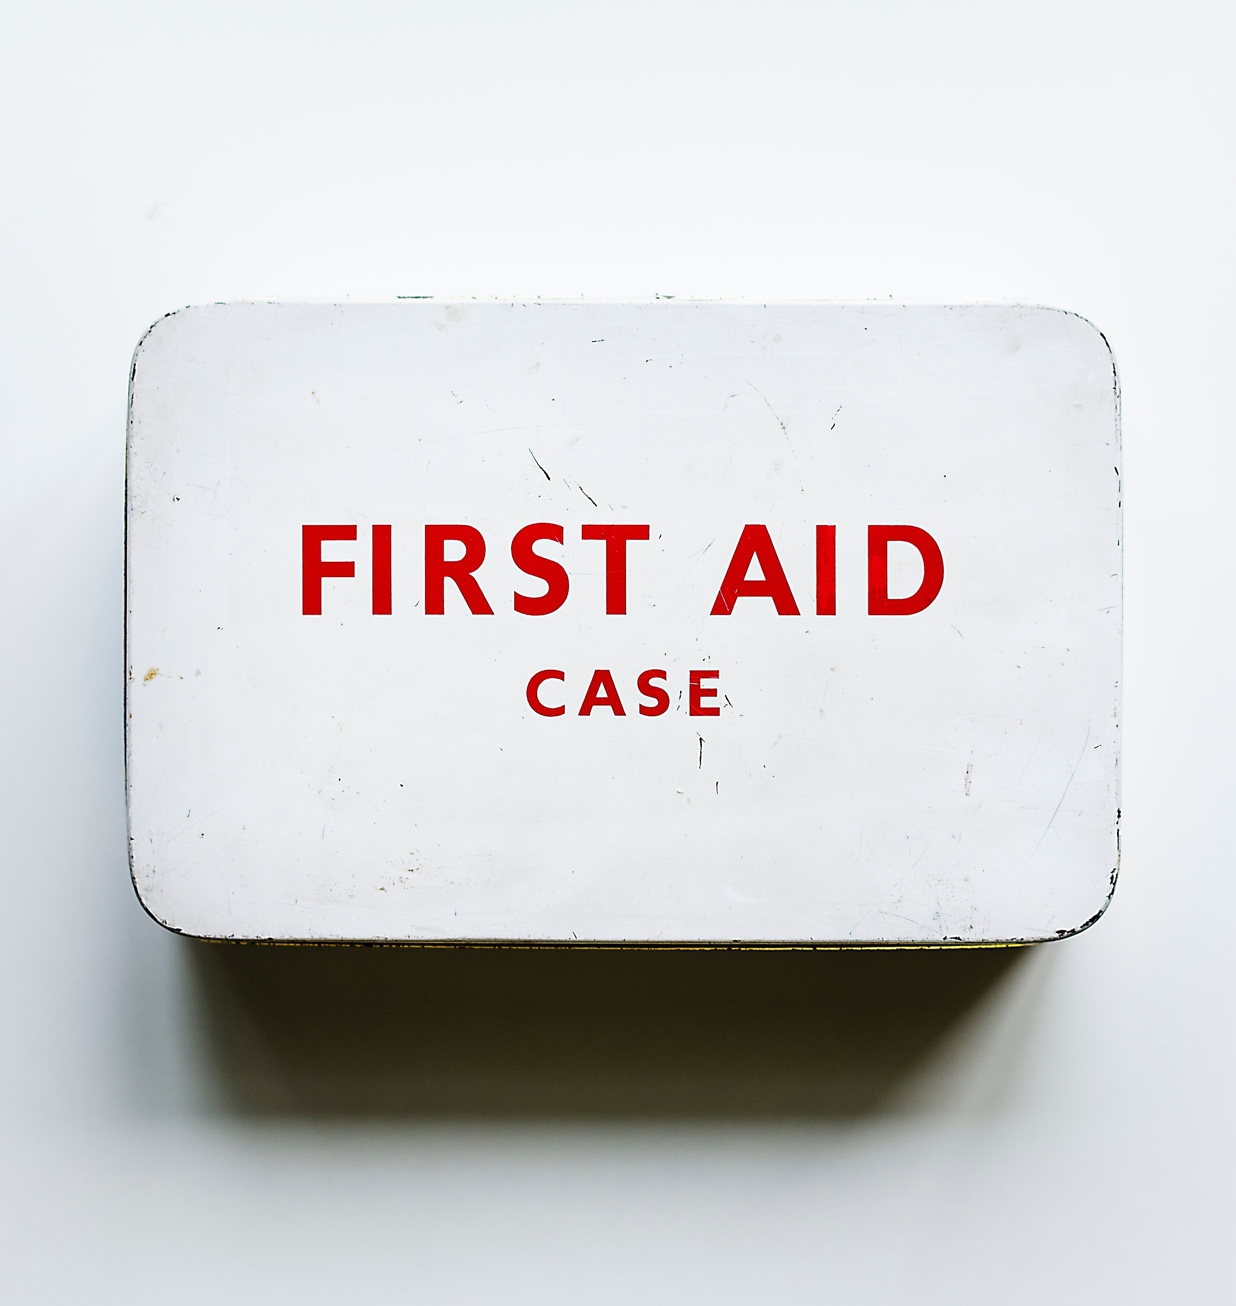 Online booking system for First Aid Course bookings and payments